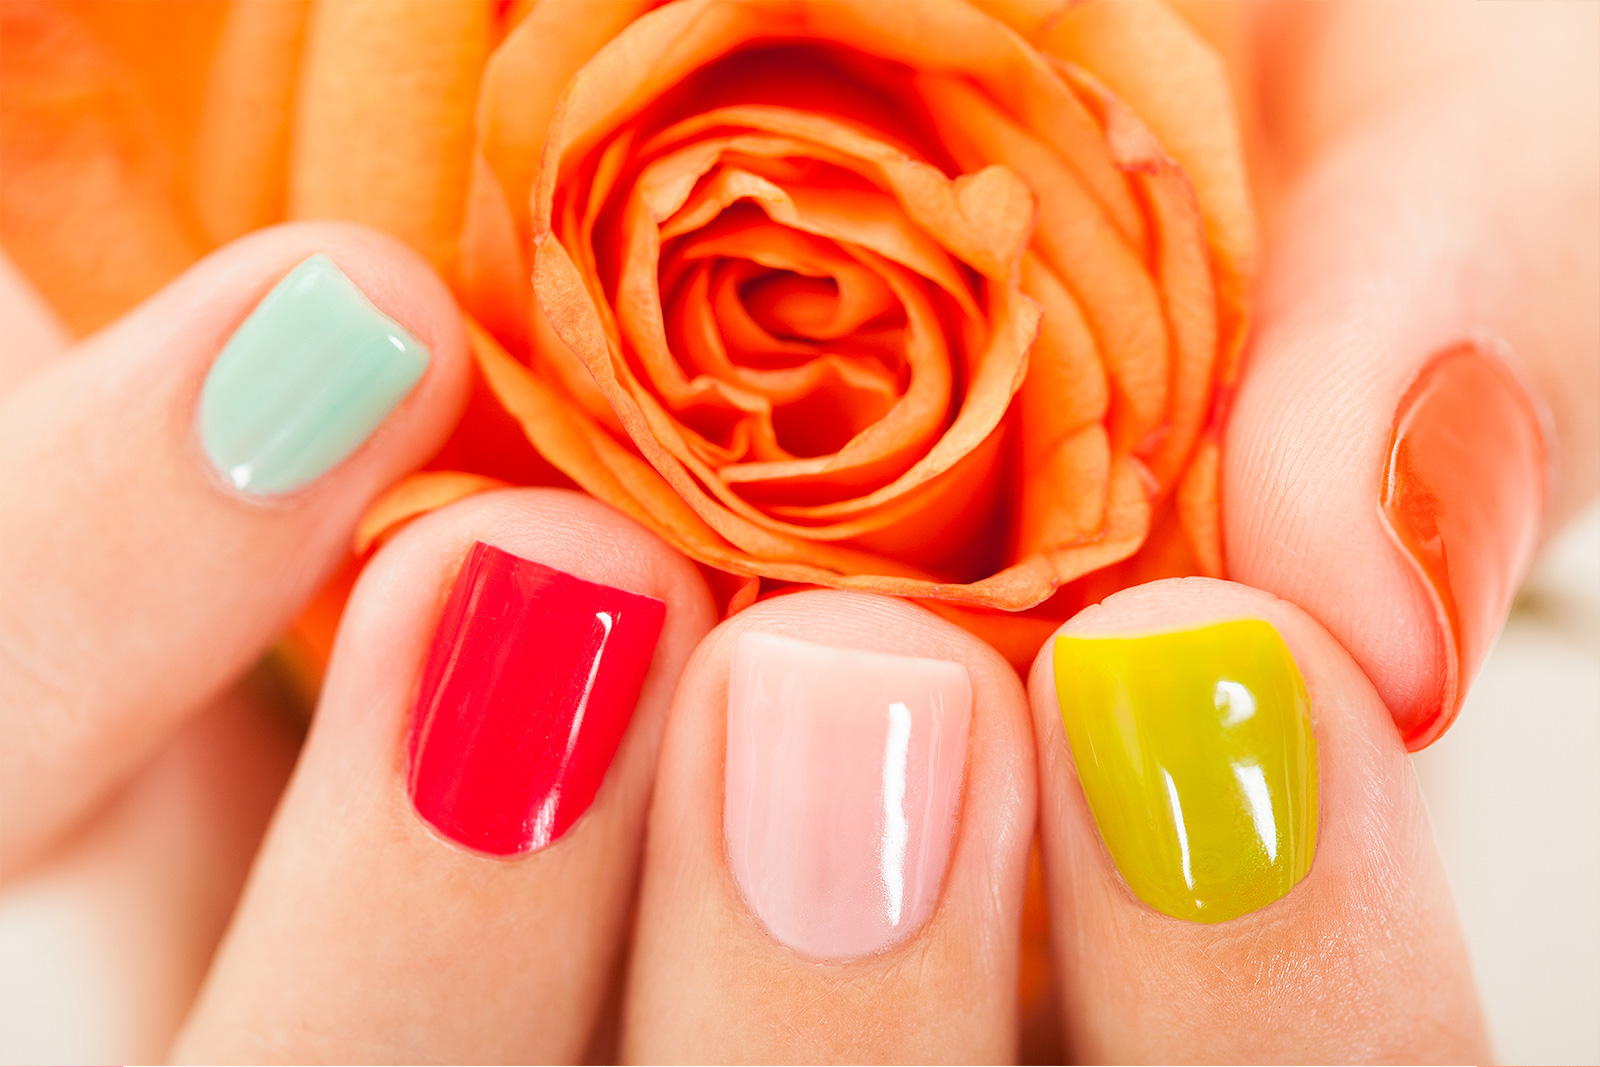 Nail Spa - Nail salon in Andover, Minnesota 55304